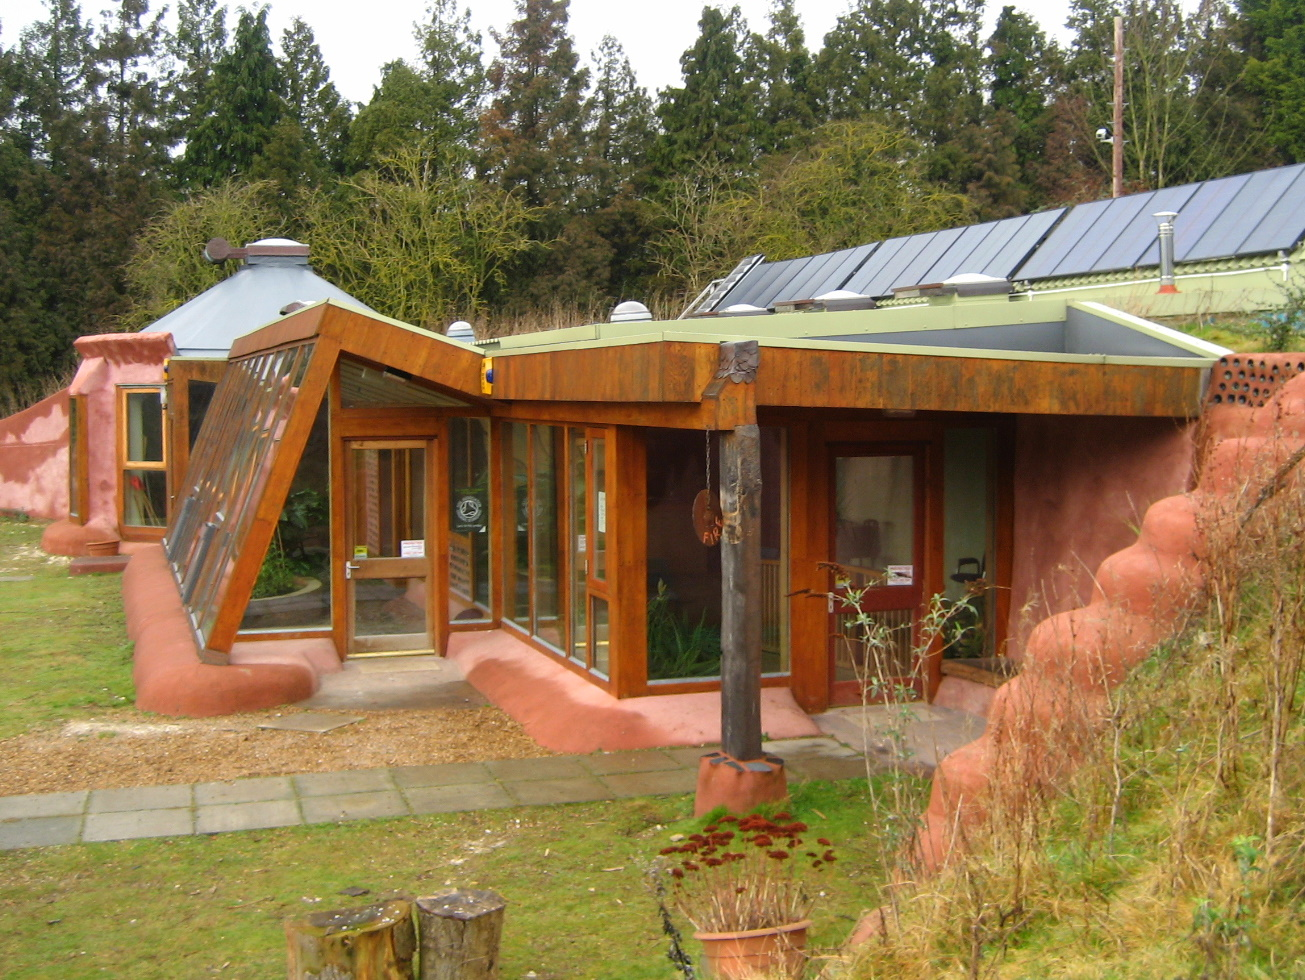 Earthship wikidwelling fandom powered by wikia for Materials needed to build a house